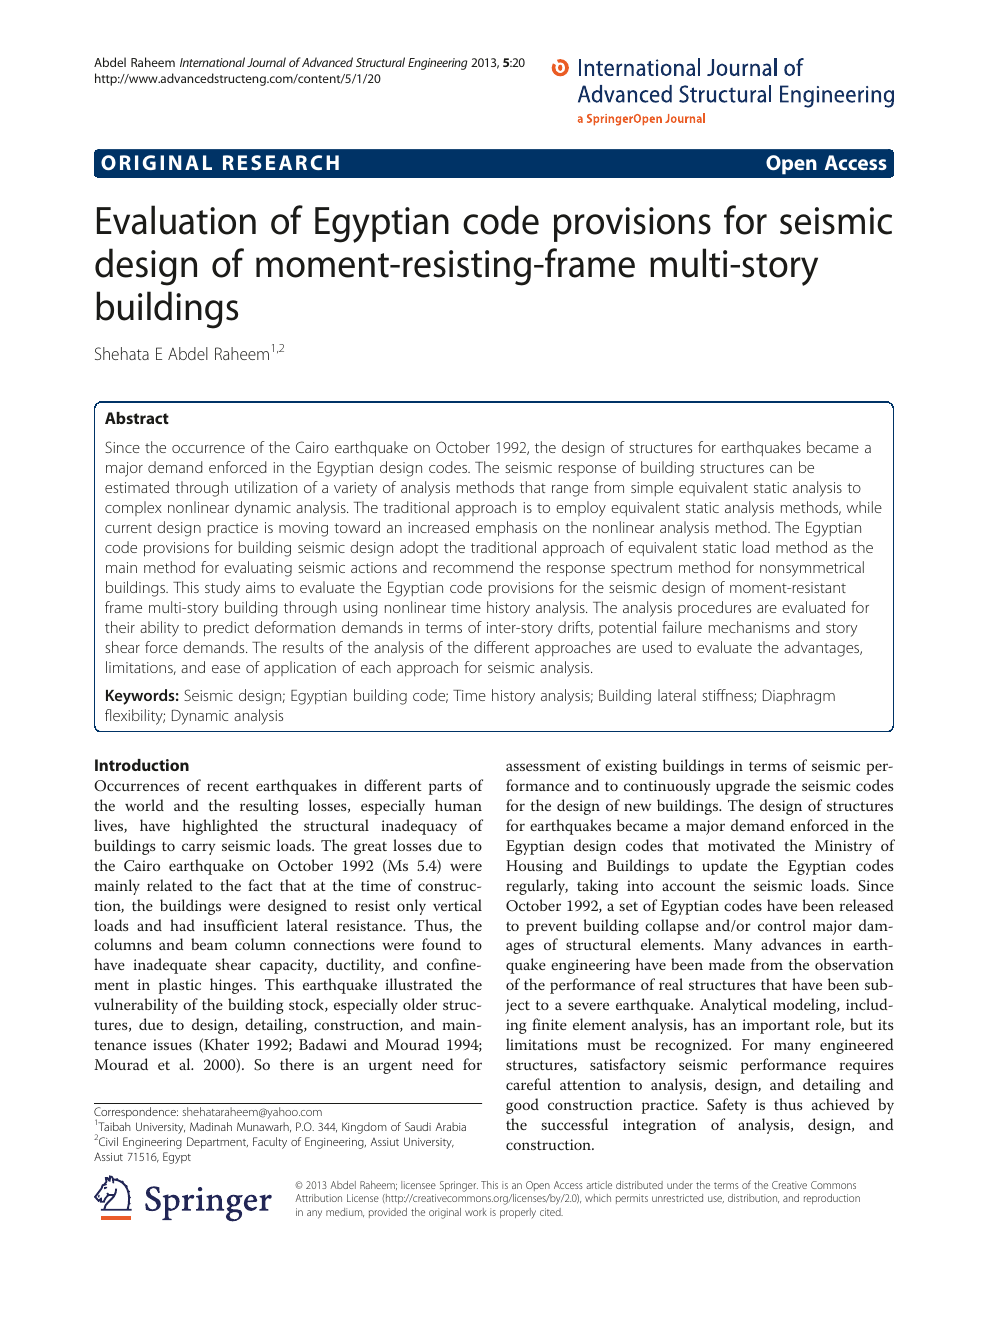 Evaluation of Egyptian code provisions for seismic design of